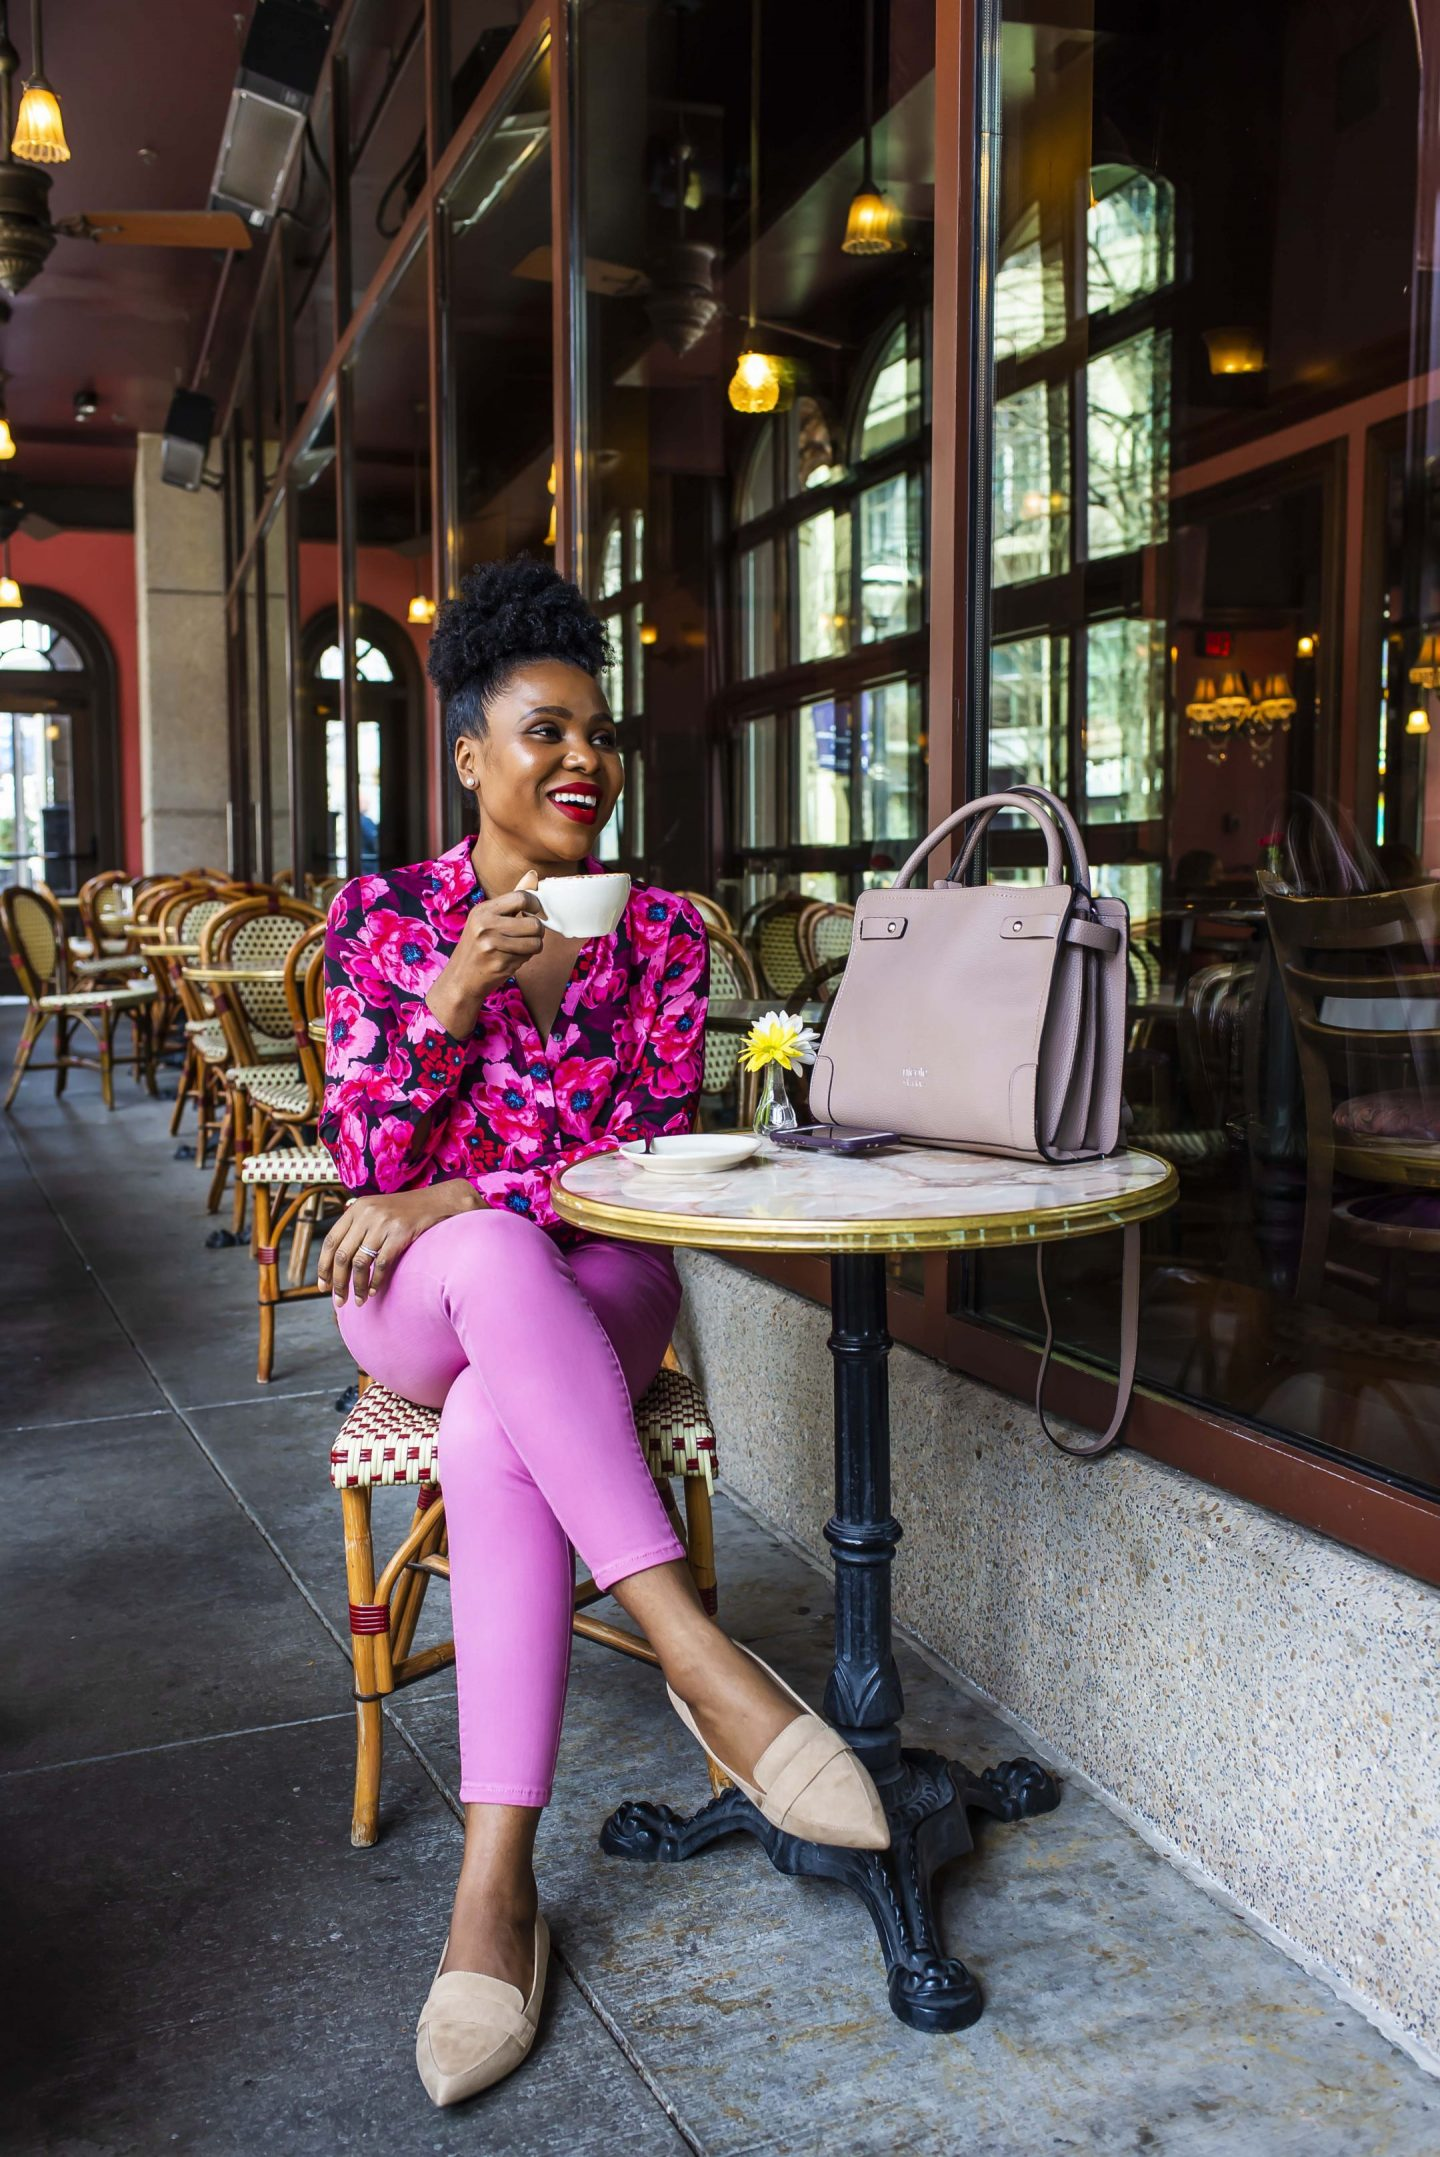 My Spring style picks at JC Penney